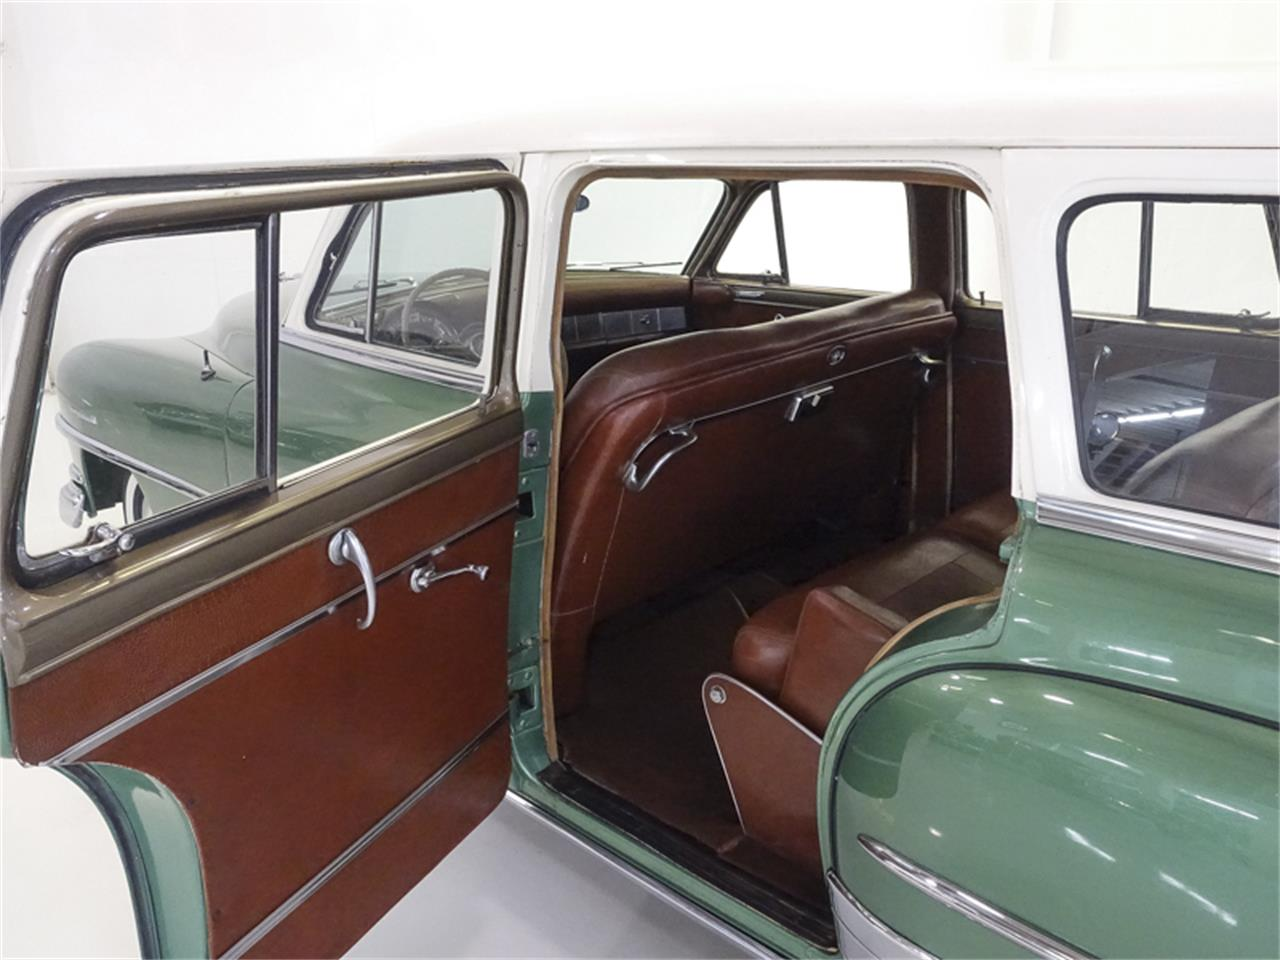 1952 Chrysler Saratoga for sale in St. Louis, MO – photo 26